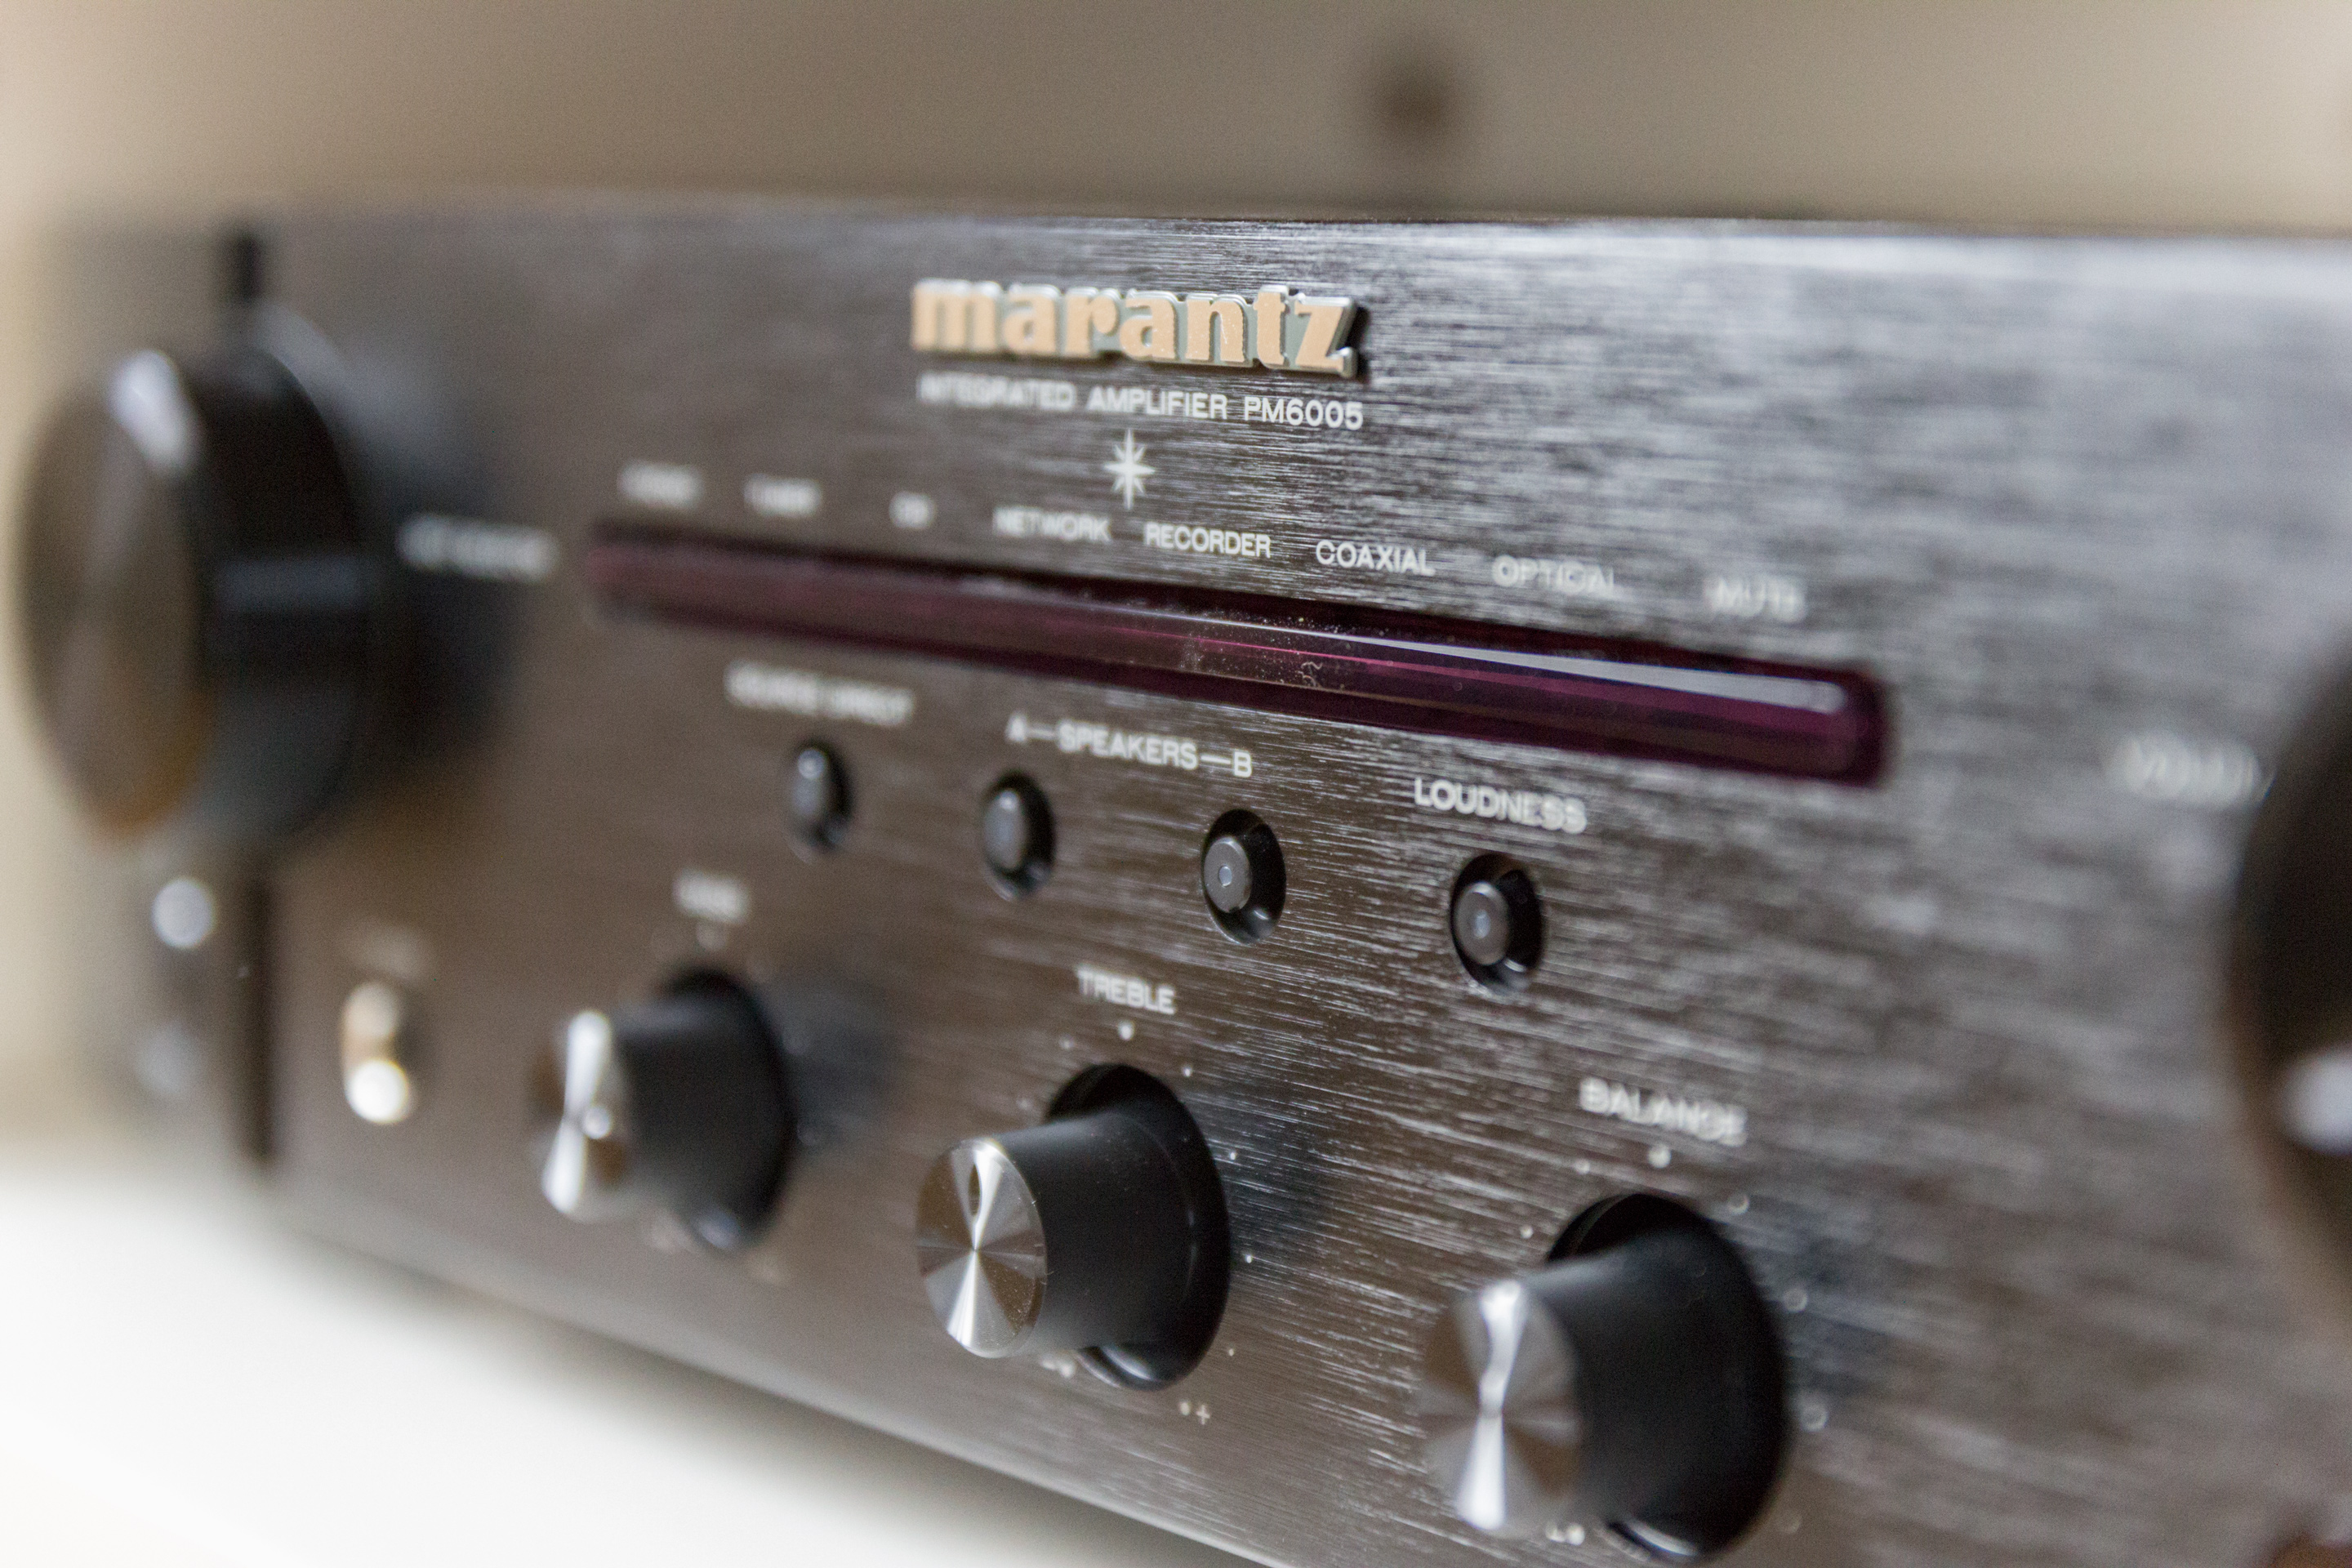 Review Marantz Pm 6005 With Cd Son Vidocom Blog Stage Audio Preamplifier Very Good Performance This Bulky Toric Transformer Is Covered Black Silicone Which Another Sign Of The Special Care Given To Design Model